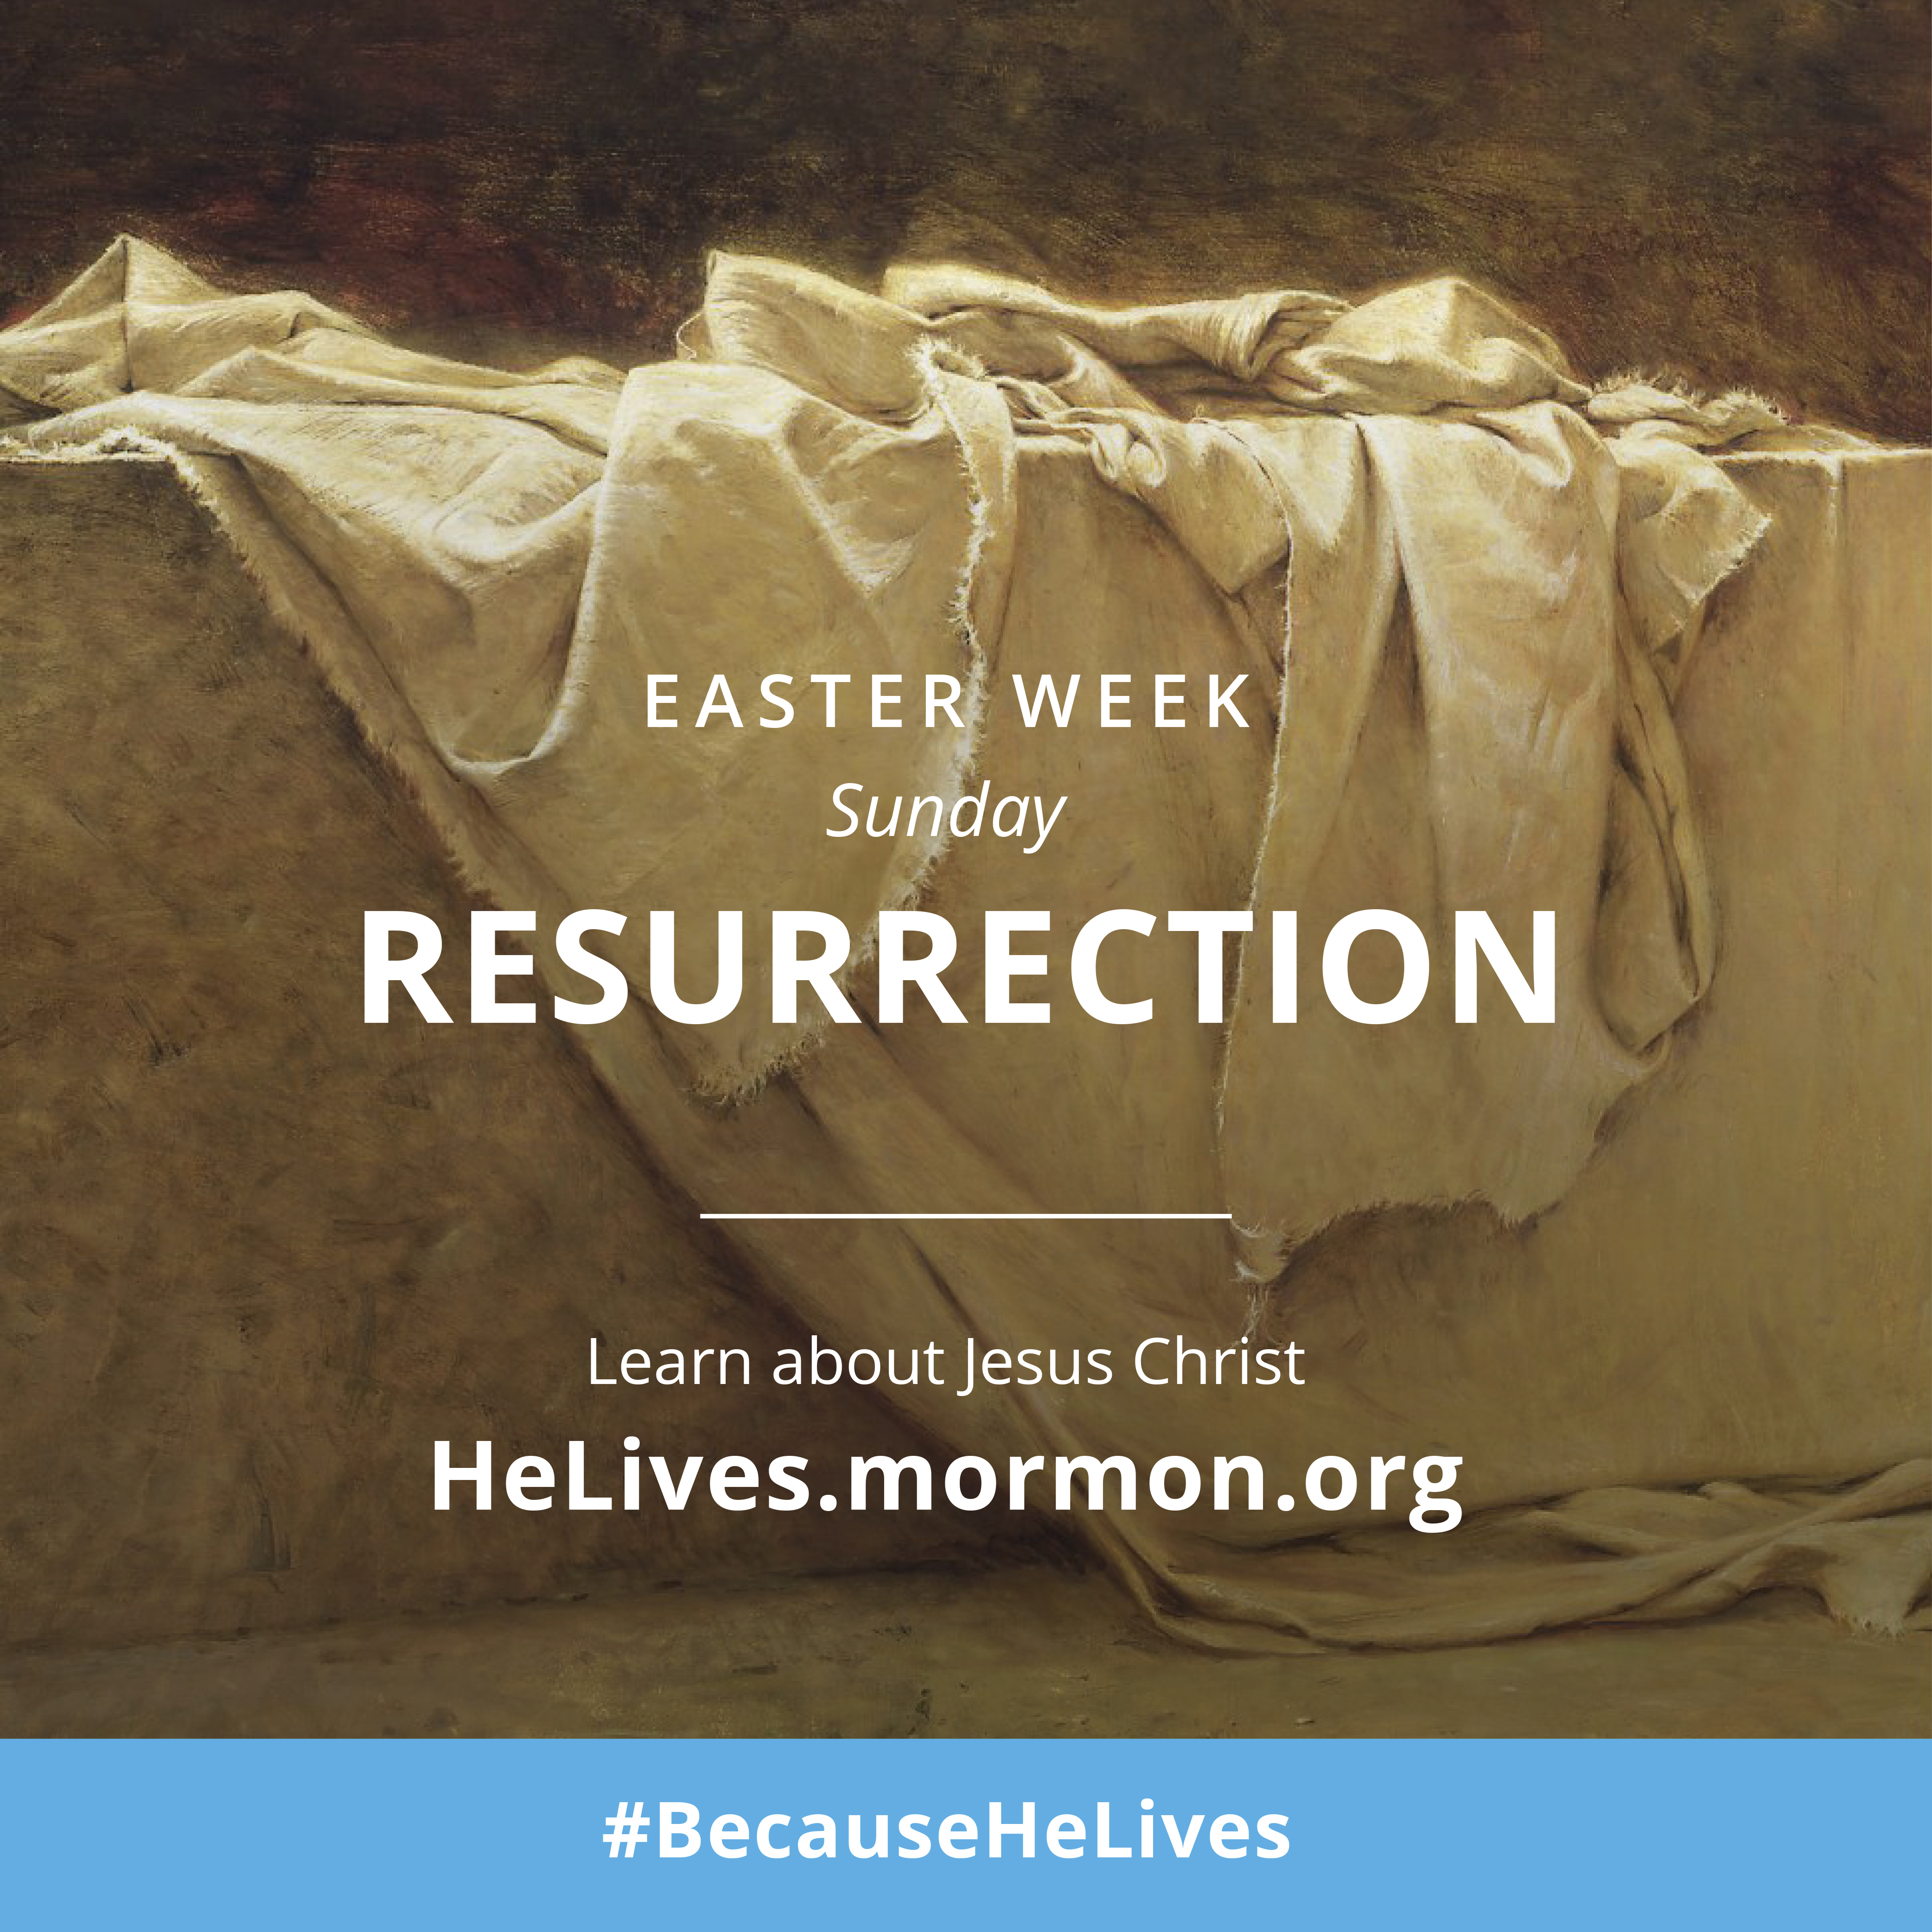 Easter week, Sunday: Resurrection. Learn about Jesus Christ. #BecauseHeLives, HeLives.mormon.org